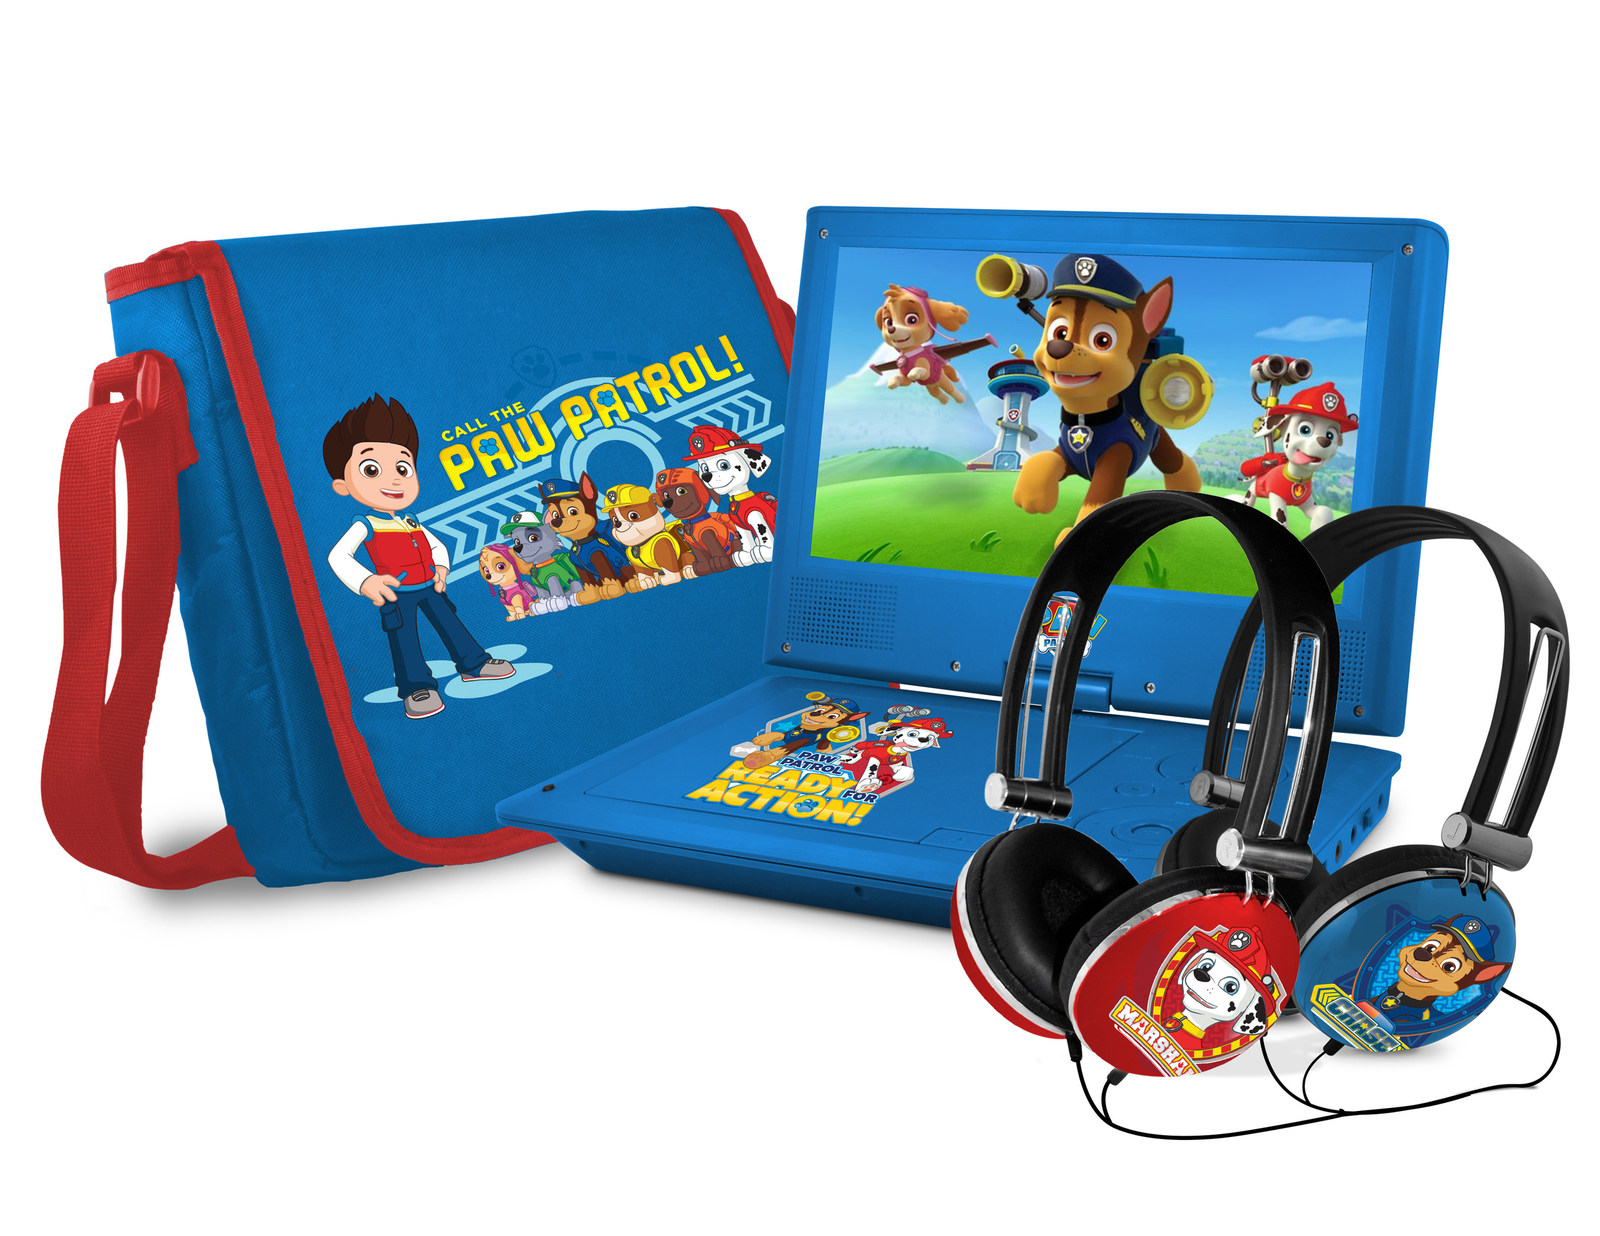 Ni nick jr games and coloring on online - Paw Patrol Portable Dvd Player Headset And Carry Case